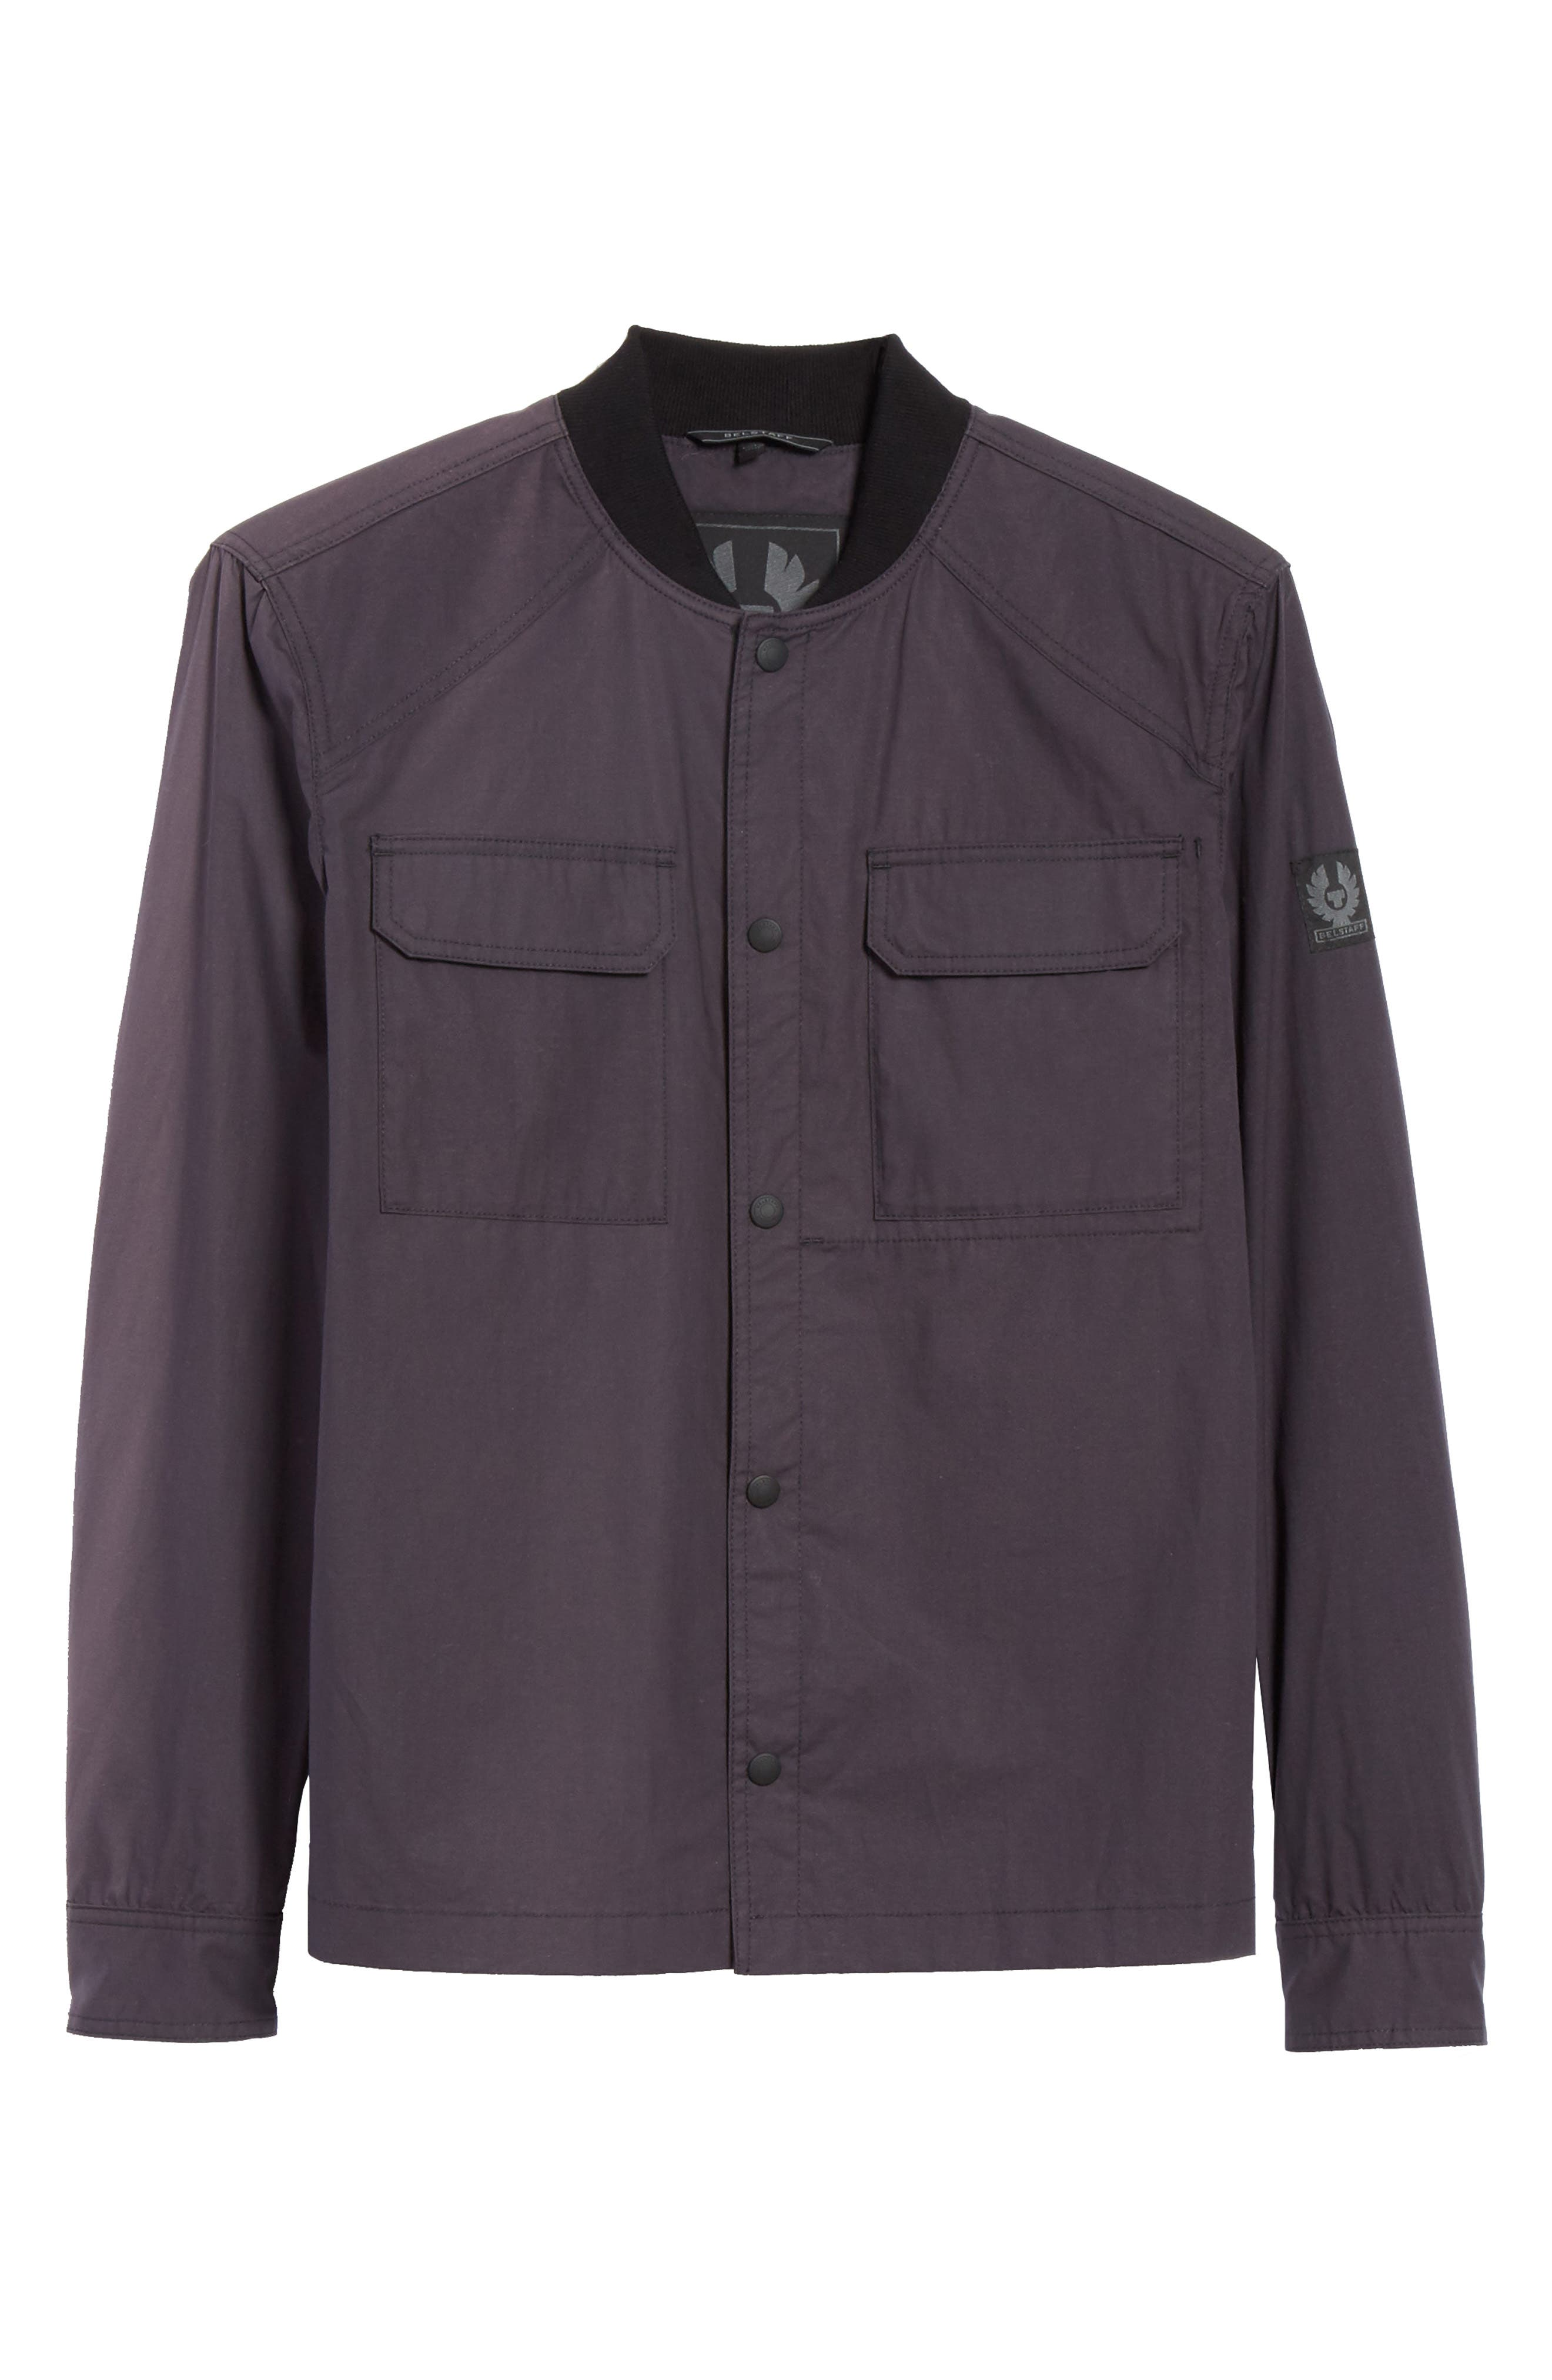 Cardingham Jacket,                             Alternate thumbnail 6, color,                             Charcoal